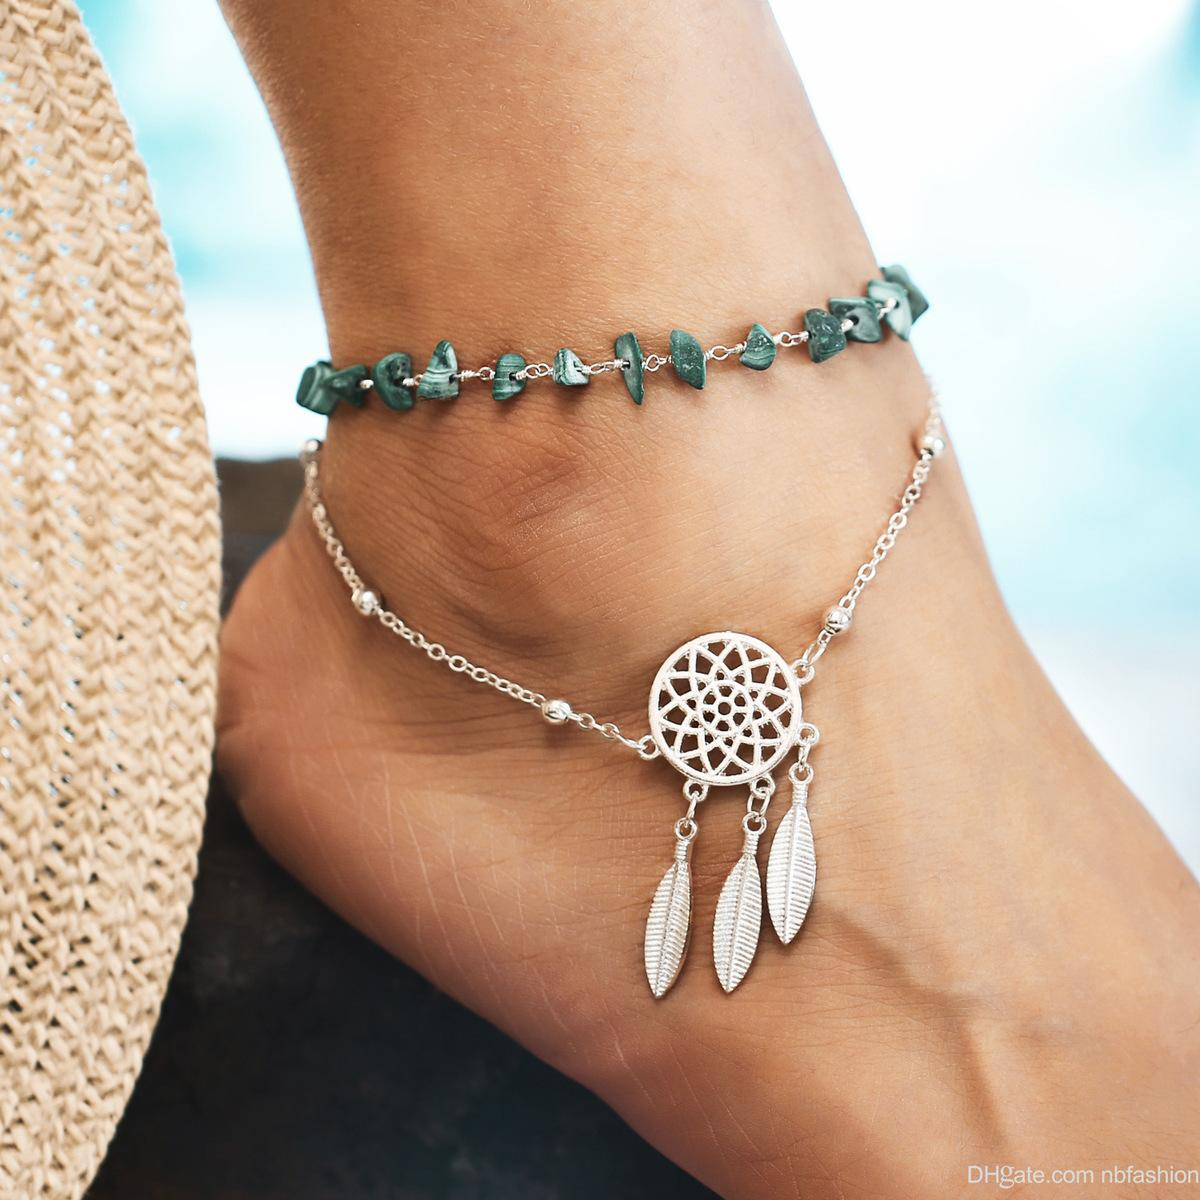 100% Quality Silver Gold Turquoise Beads Chain Bracelet Foot Beach Anklet Ankle Feet Jewelry Professional Design Fashion Jewelry